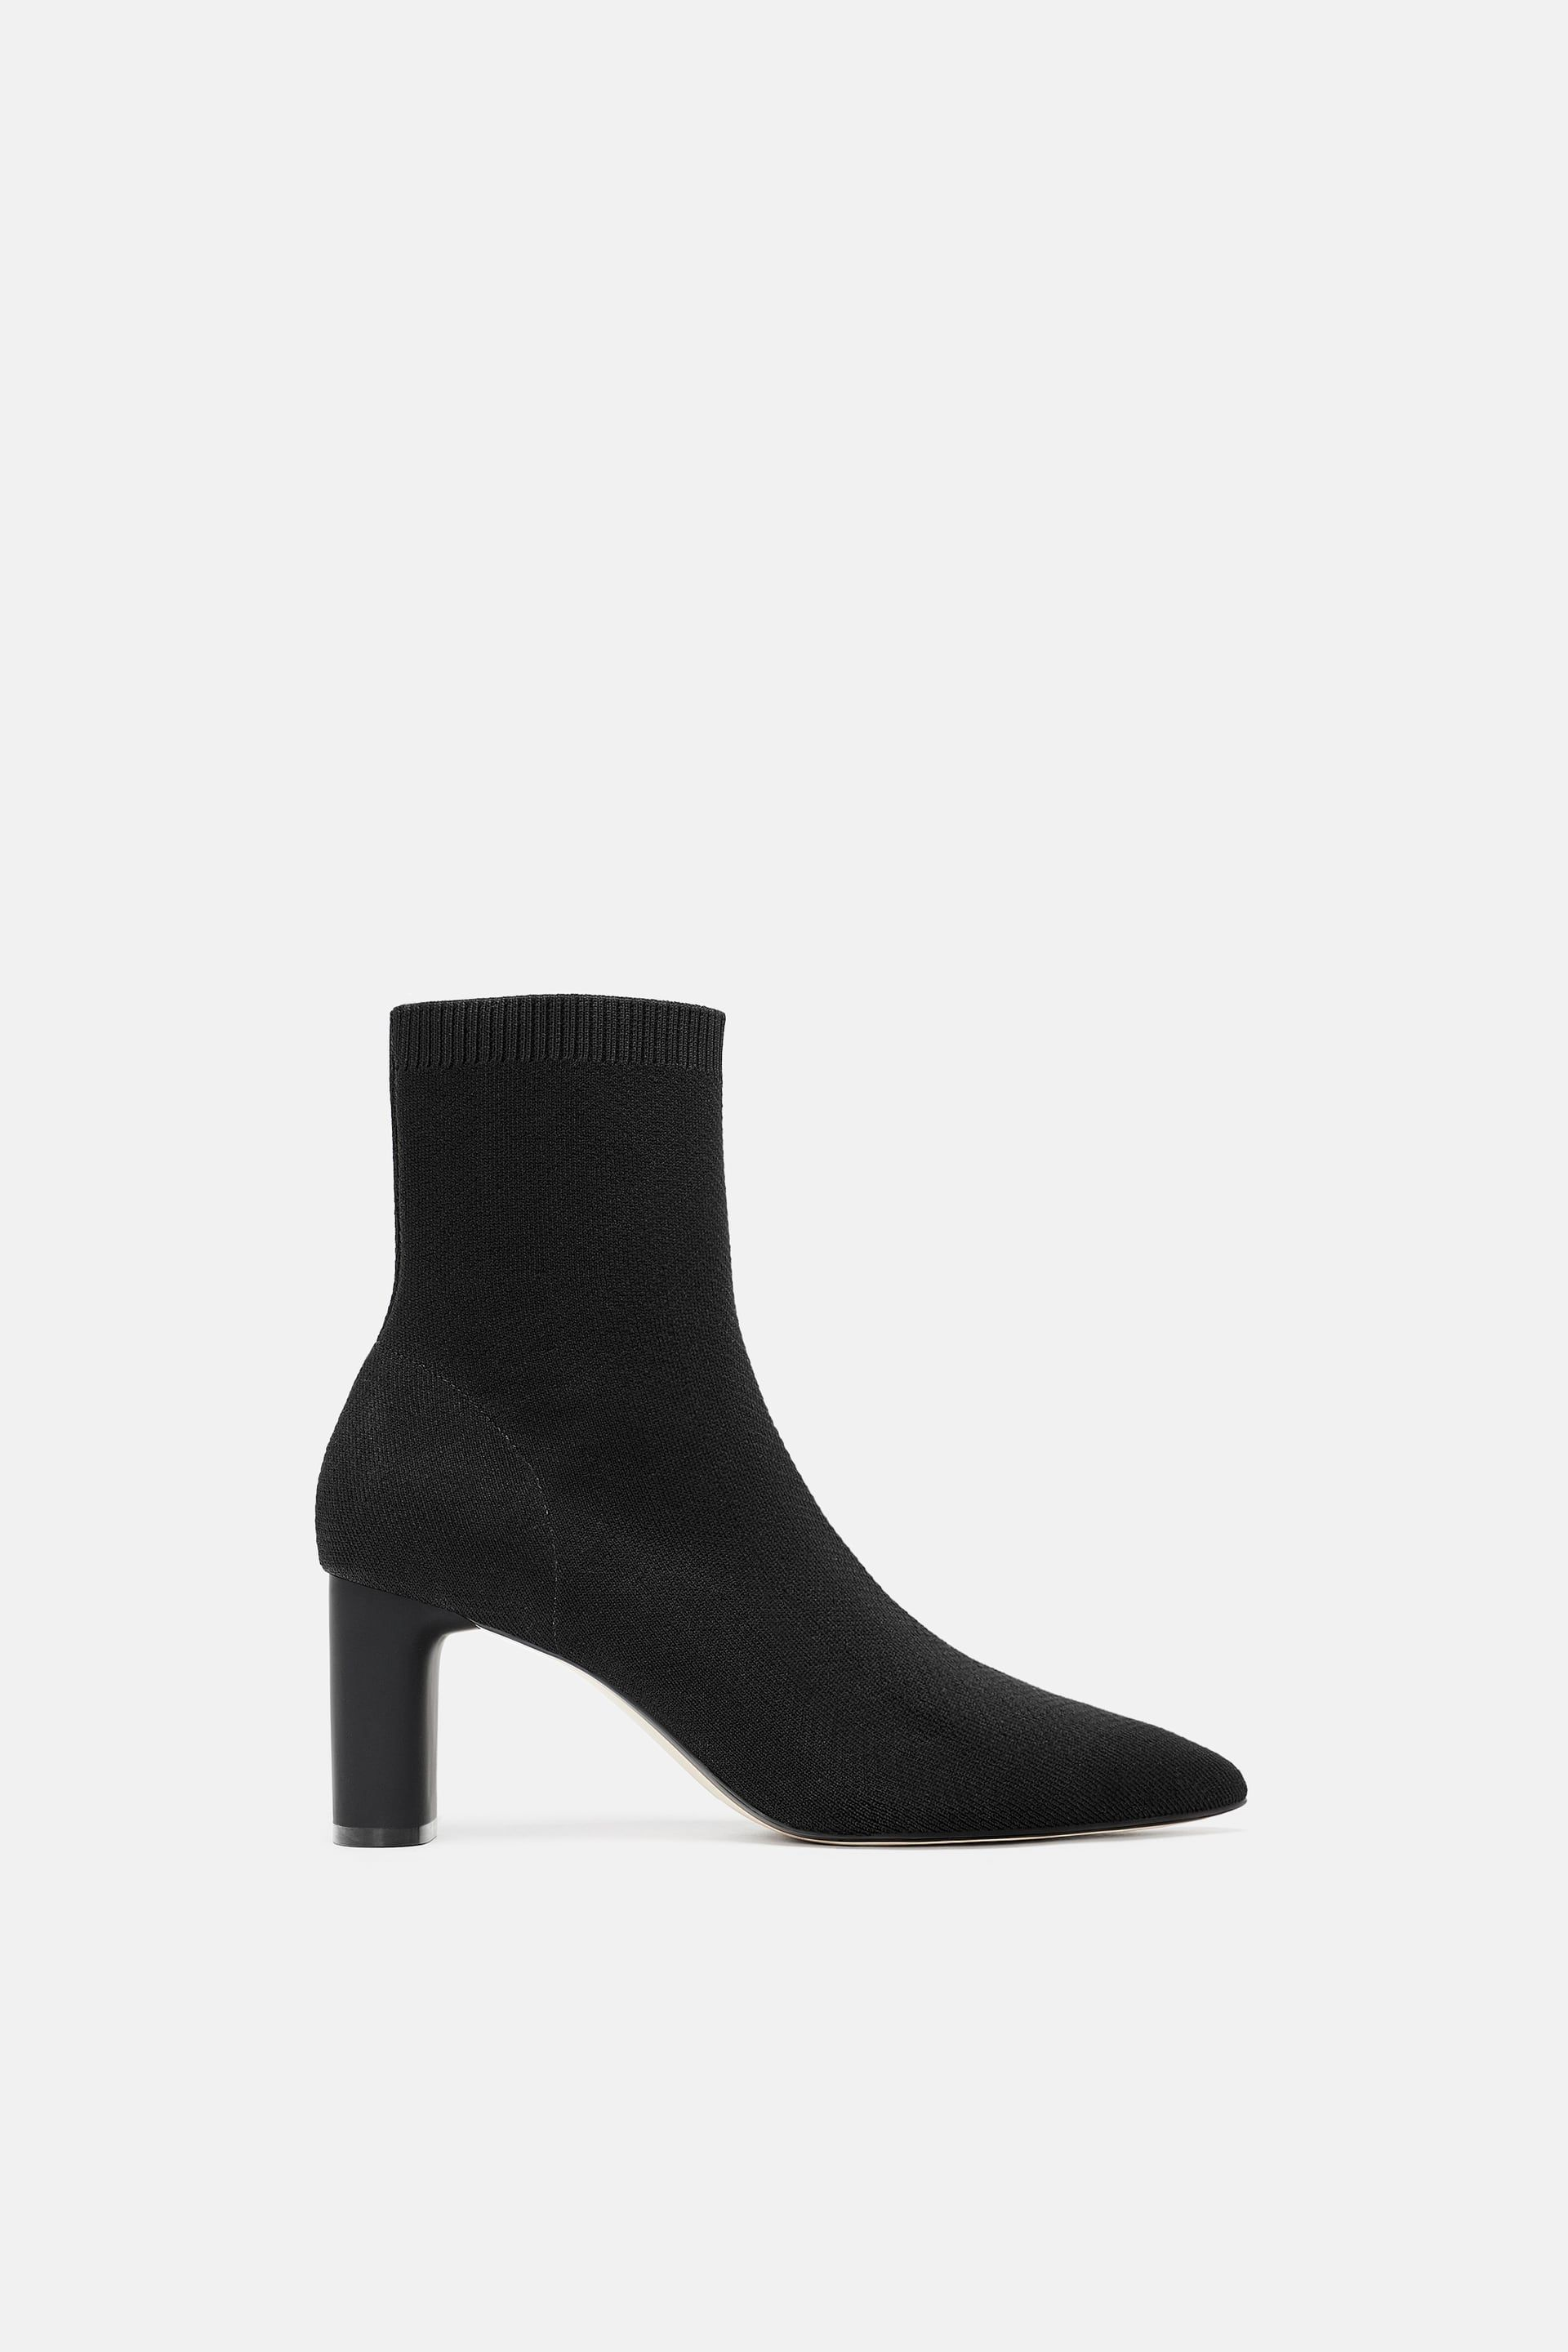 c0f4553d0b3 Image 2 of FABRIC HEELED ANKLE BOOTS from Zara